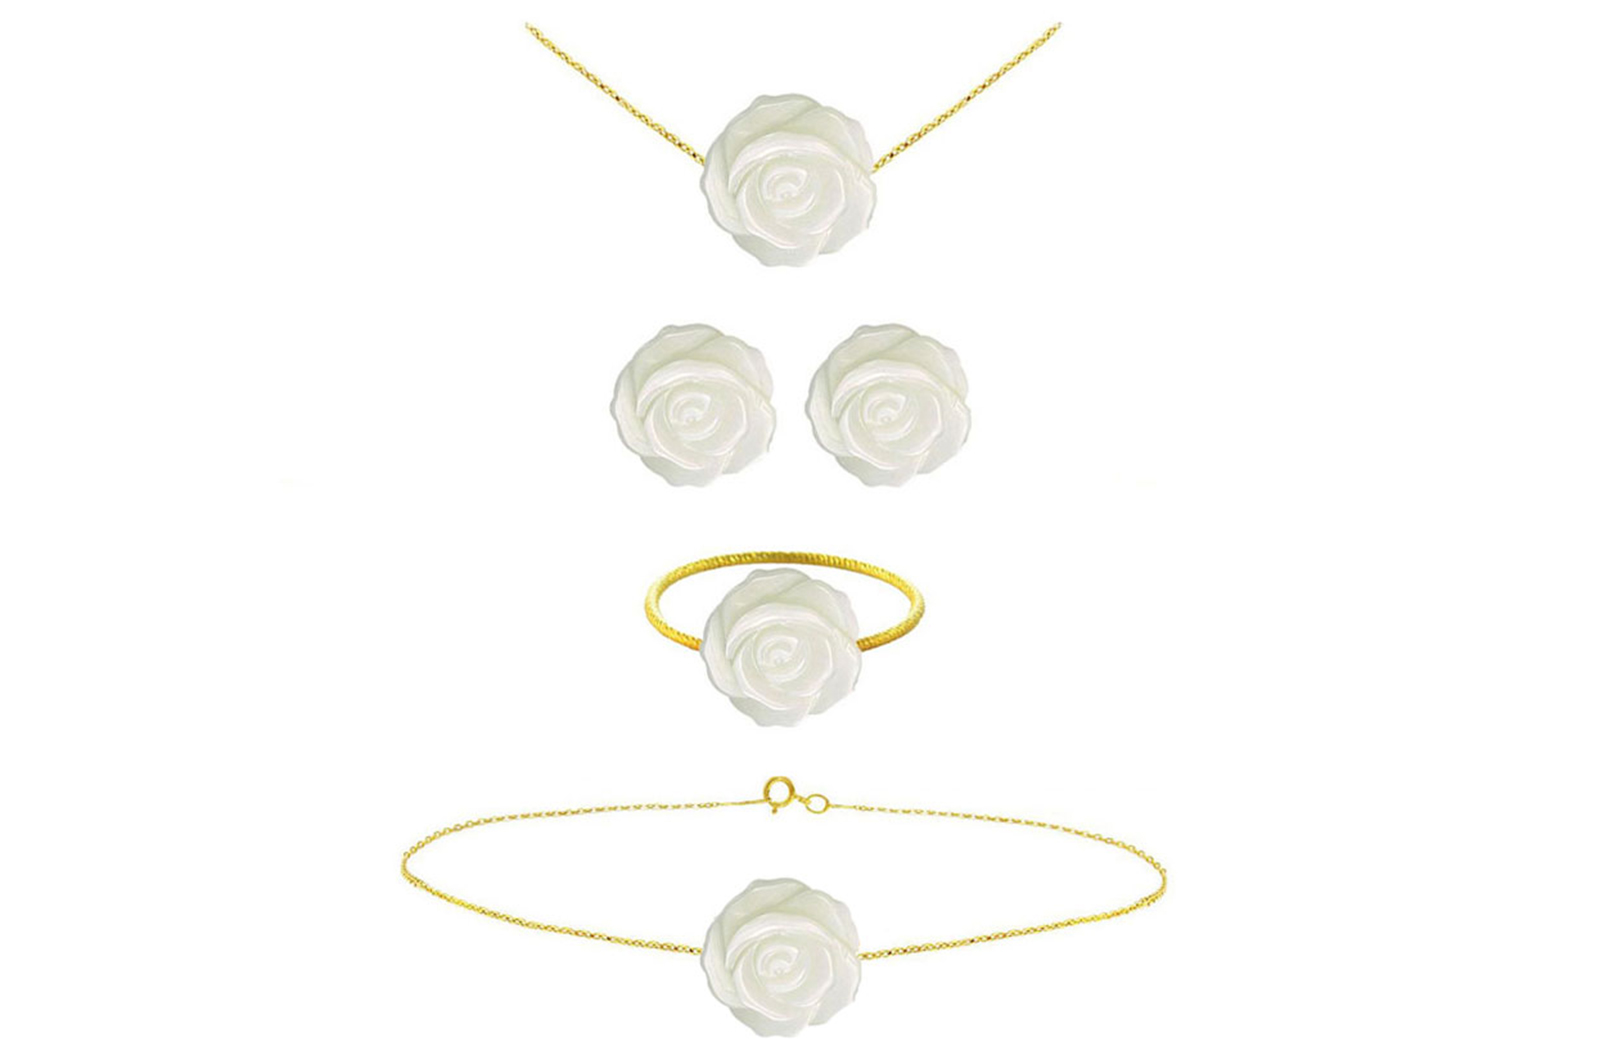 Vera Perla 18k Gold, 12mm Rose Carved Mother of Pearl 4 pcs Jewelry Set